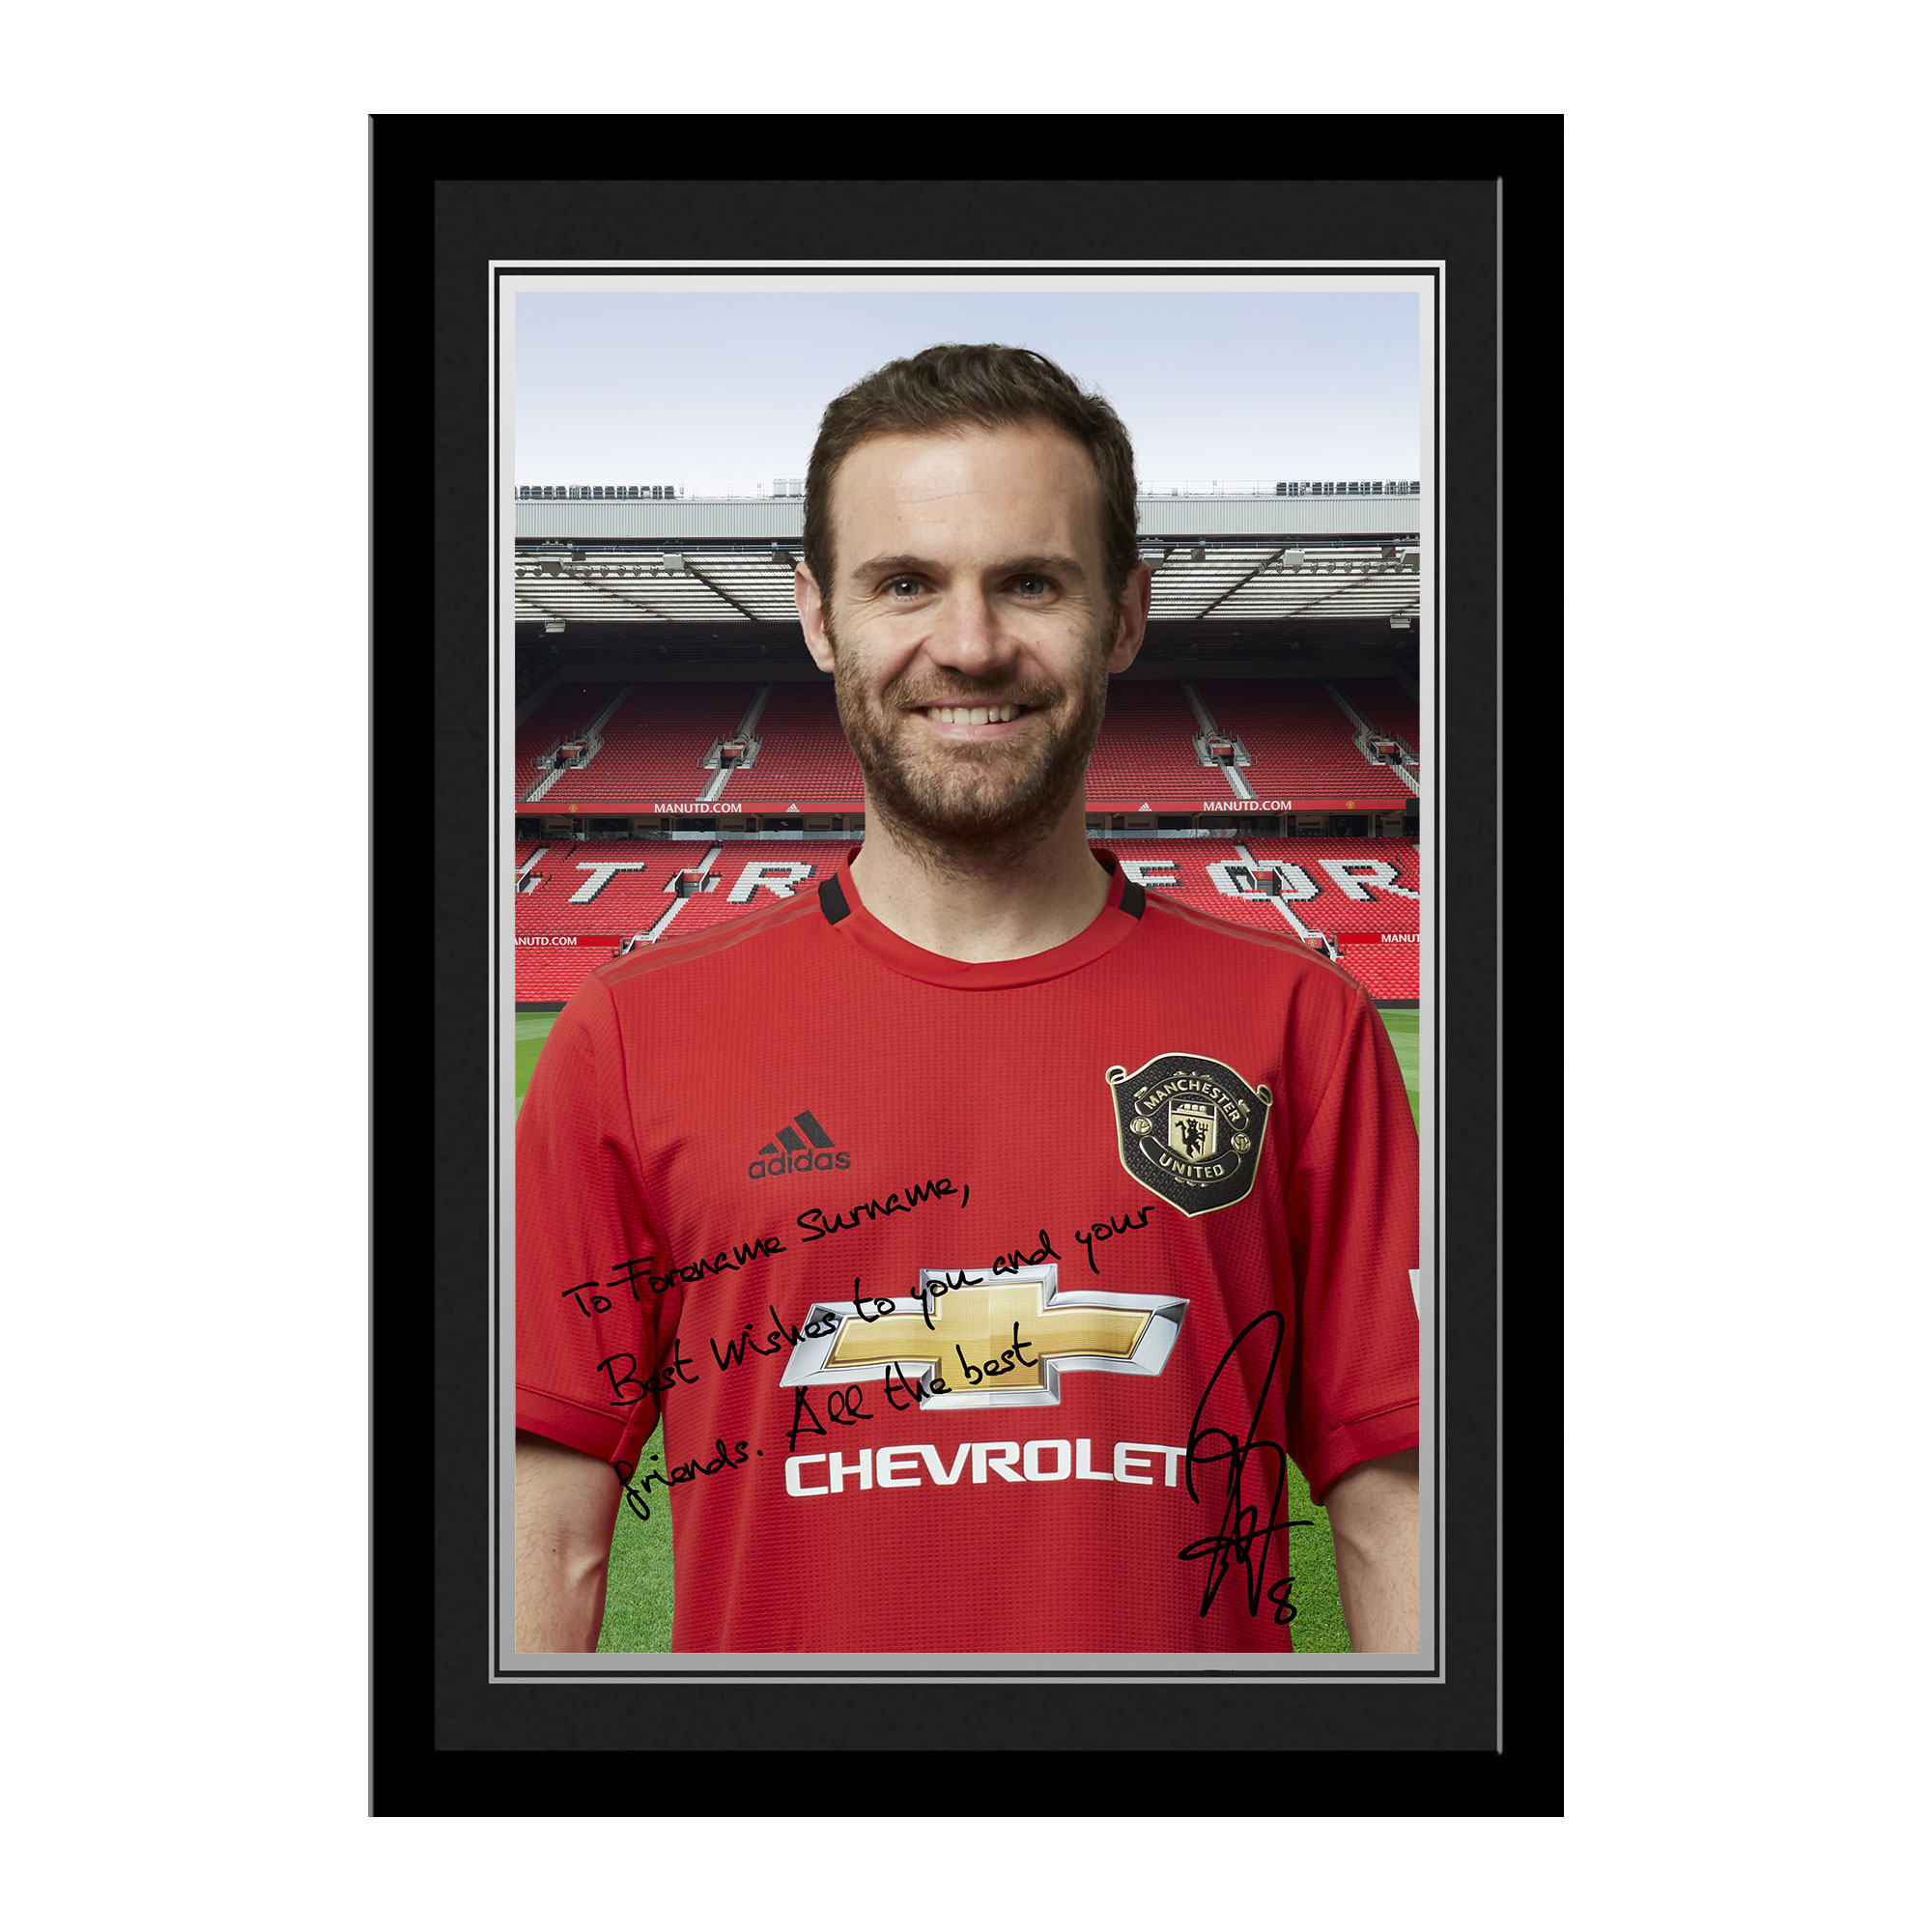 Manchester United Personalised Signature Photo Framed - Mata